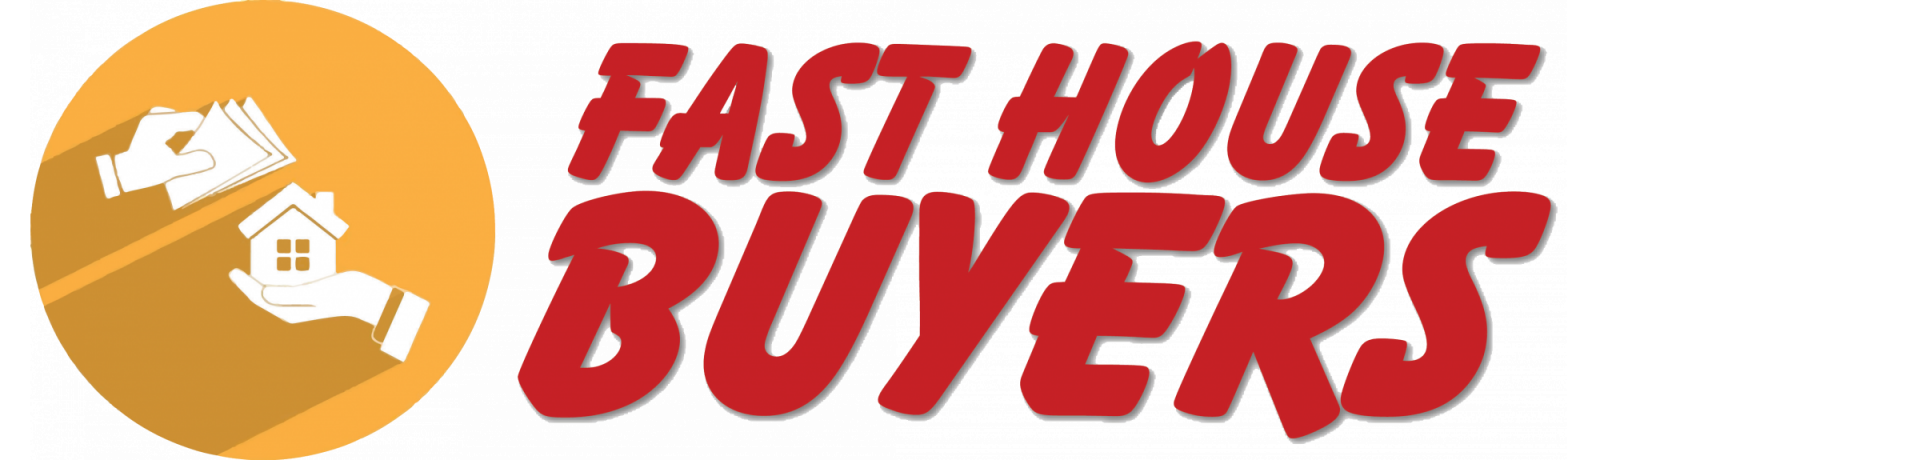 Fast House Buyers